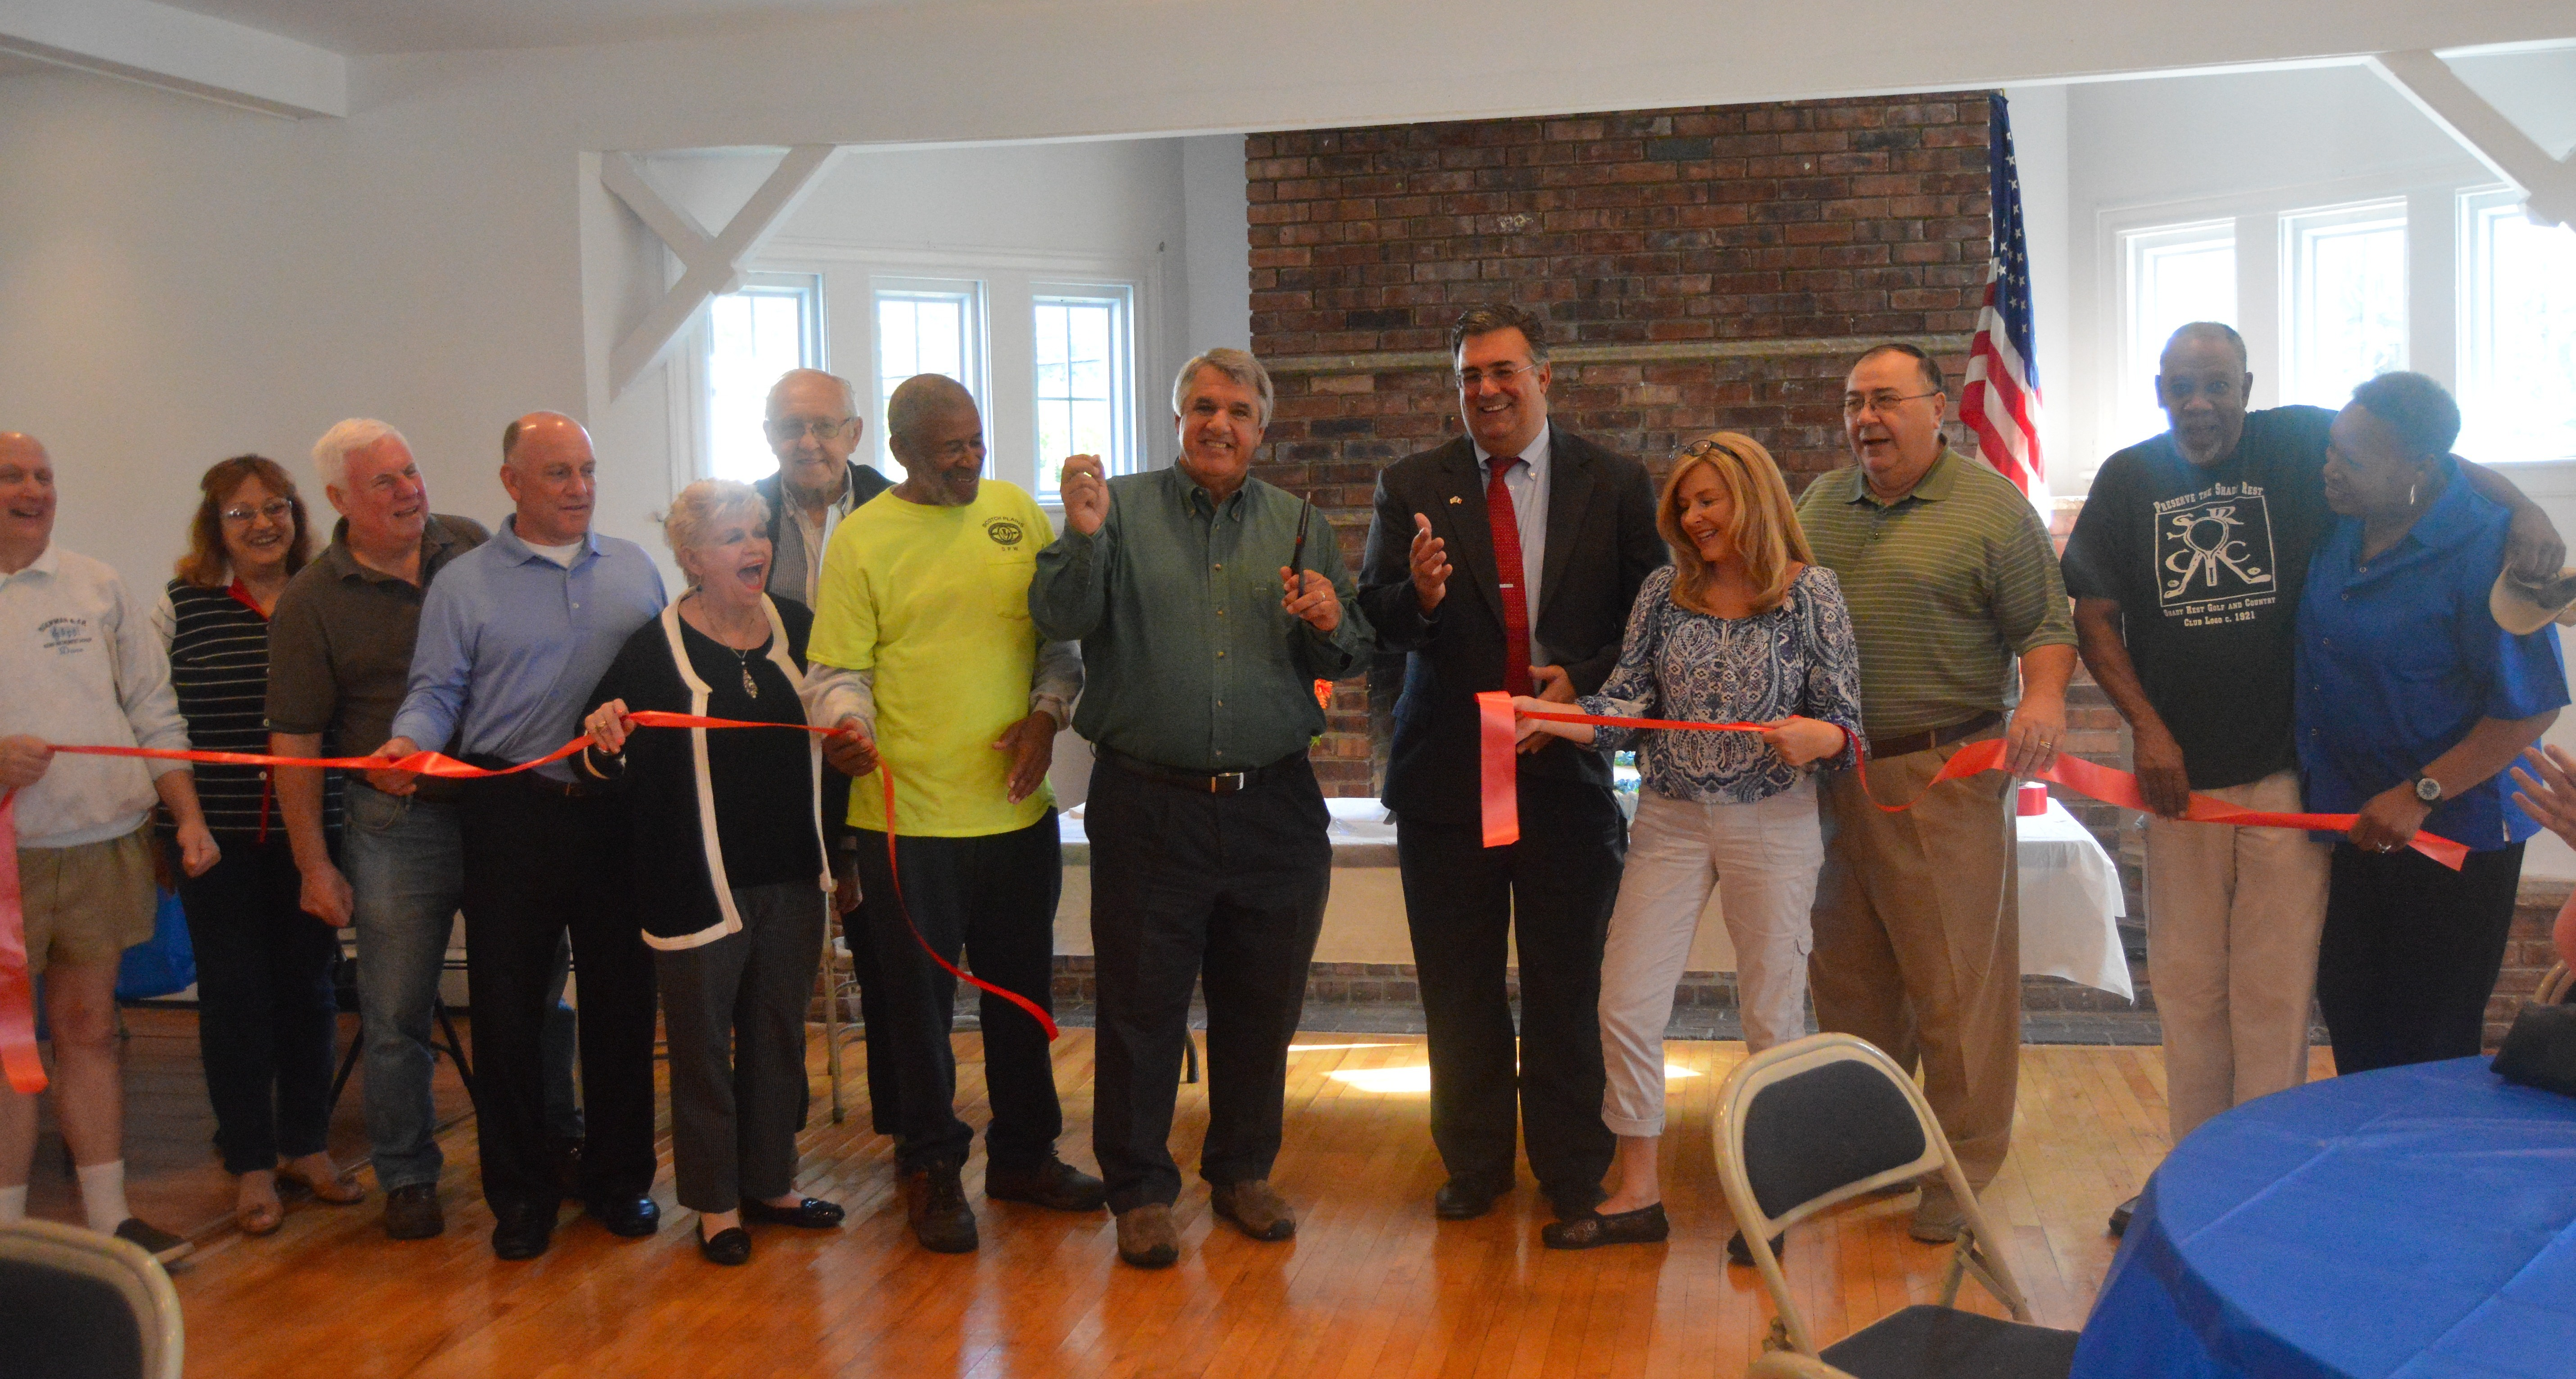 cf98be7987f4554b005c_Shady_Rest_-_Ribbon_cutting.JPG